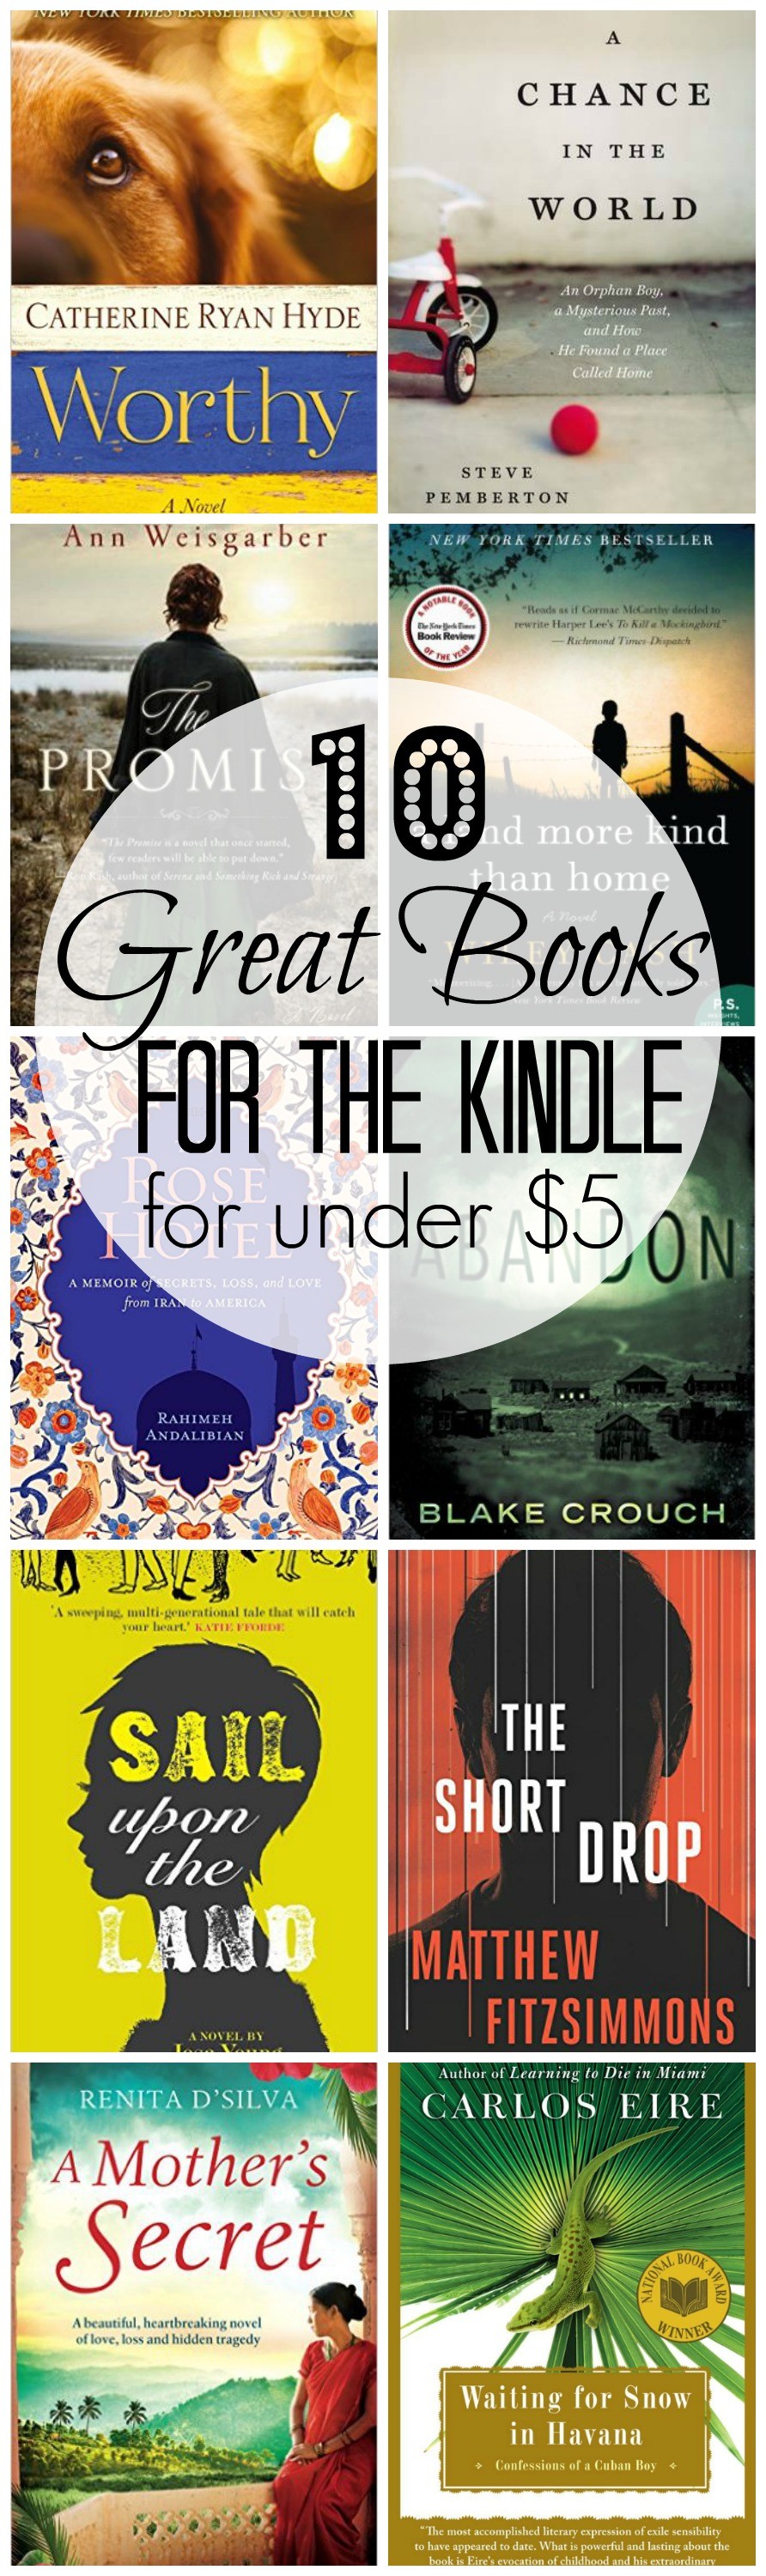 10 Great Books for the Kindle for Under $5 | www.homeandplate.com | Great reads for your Kindle without spending a lot of money.